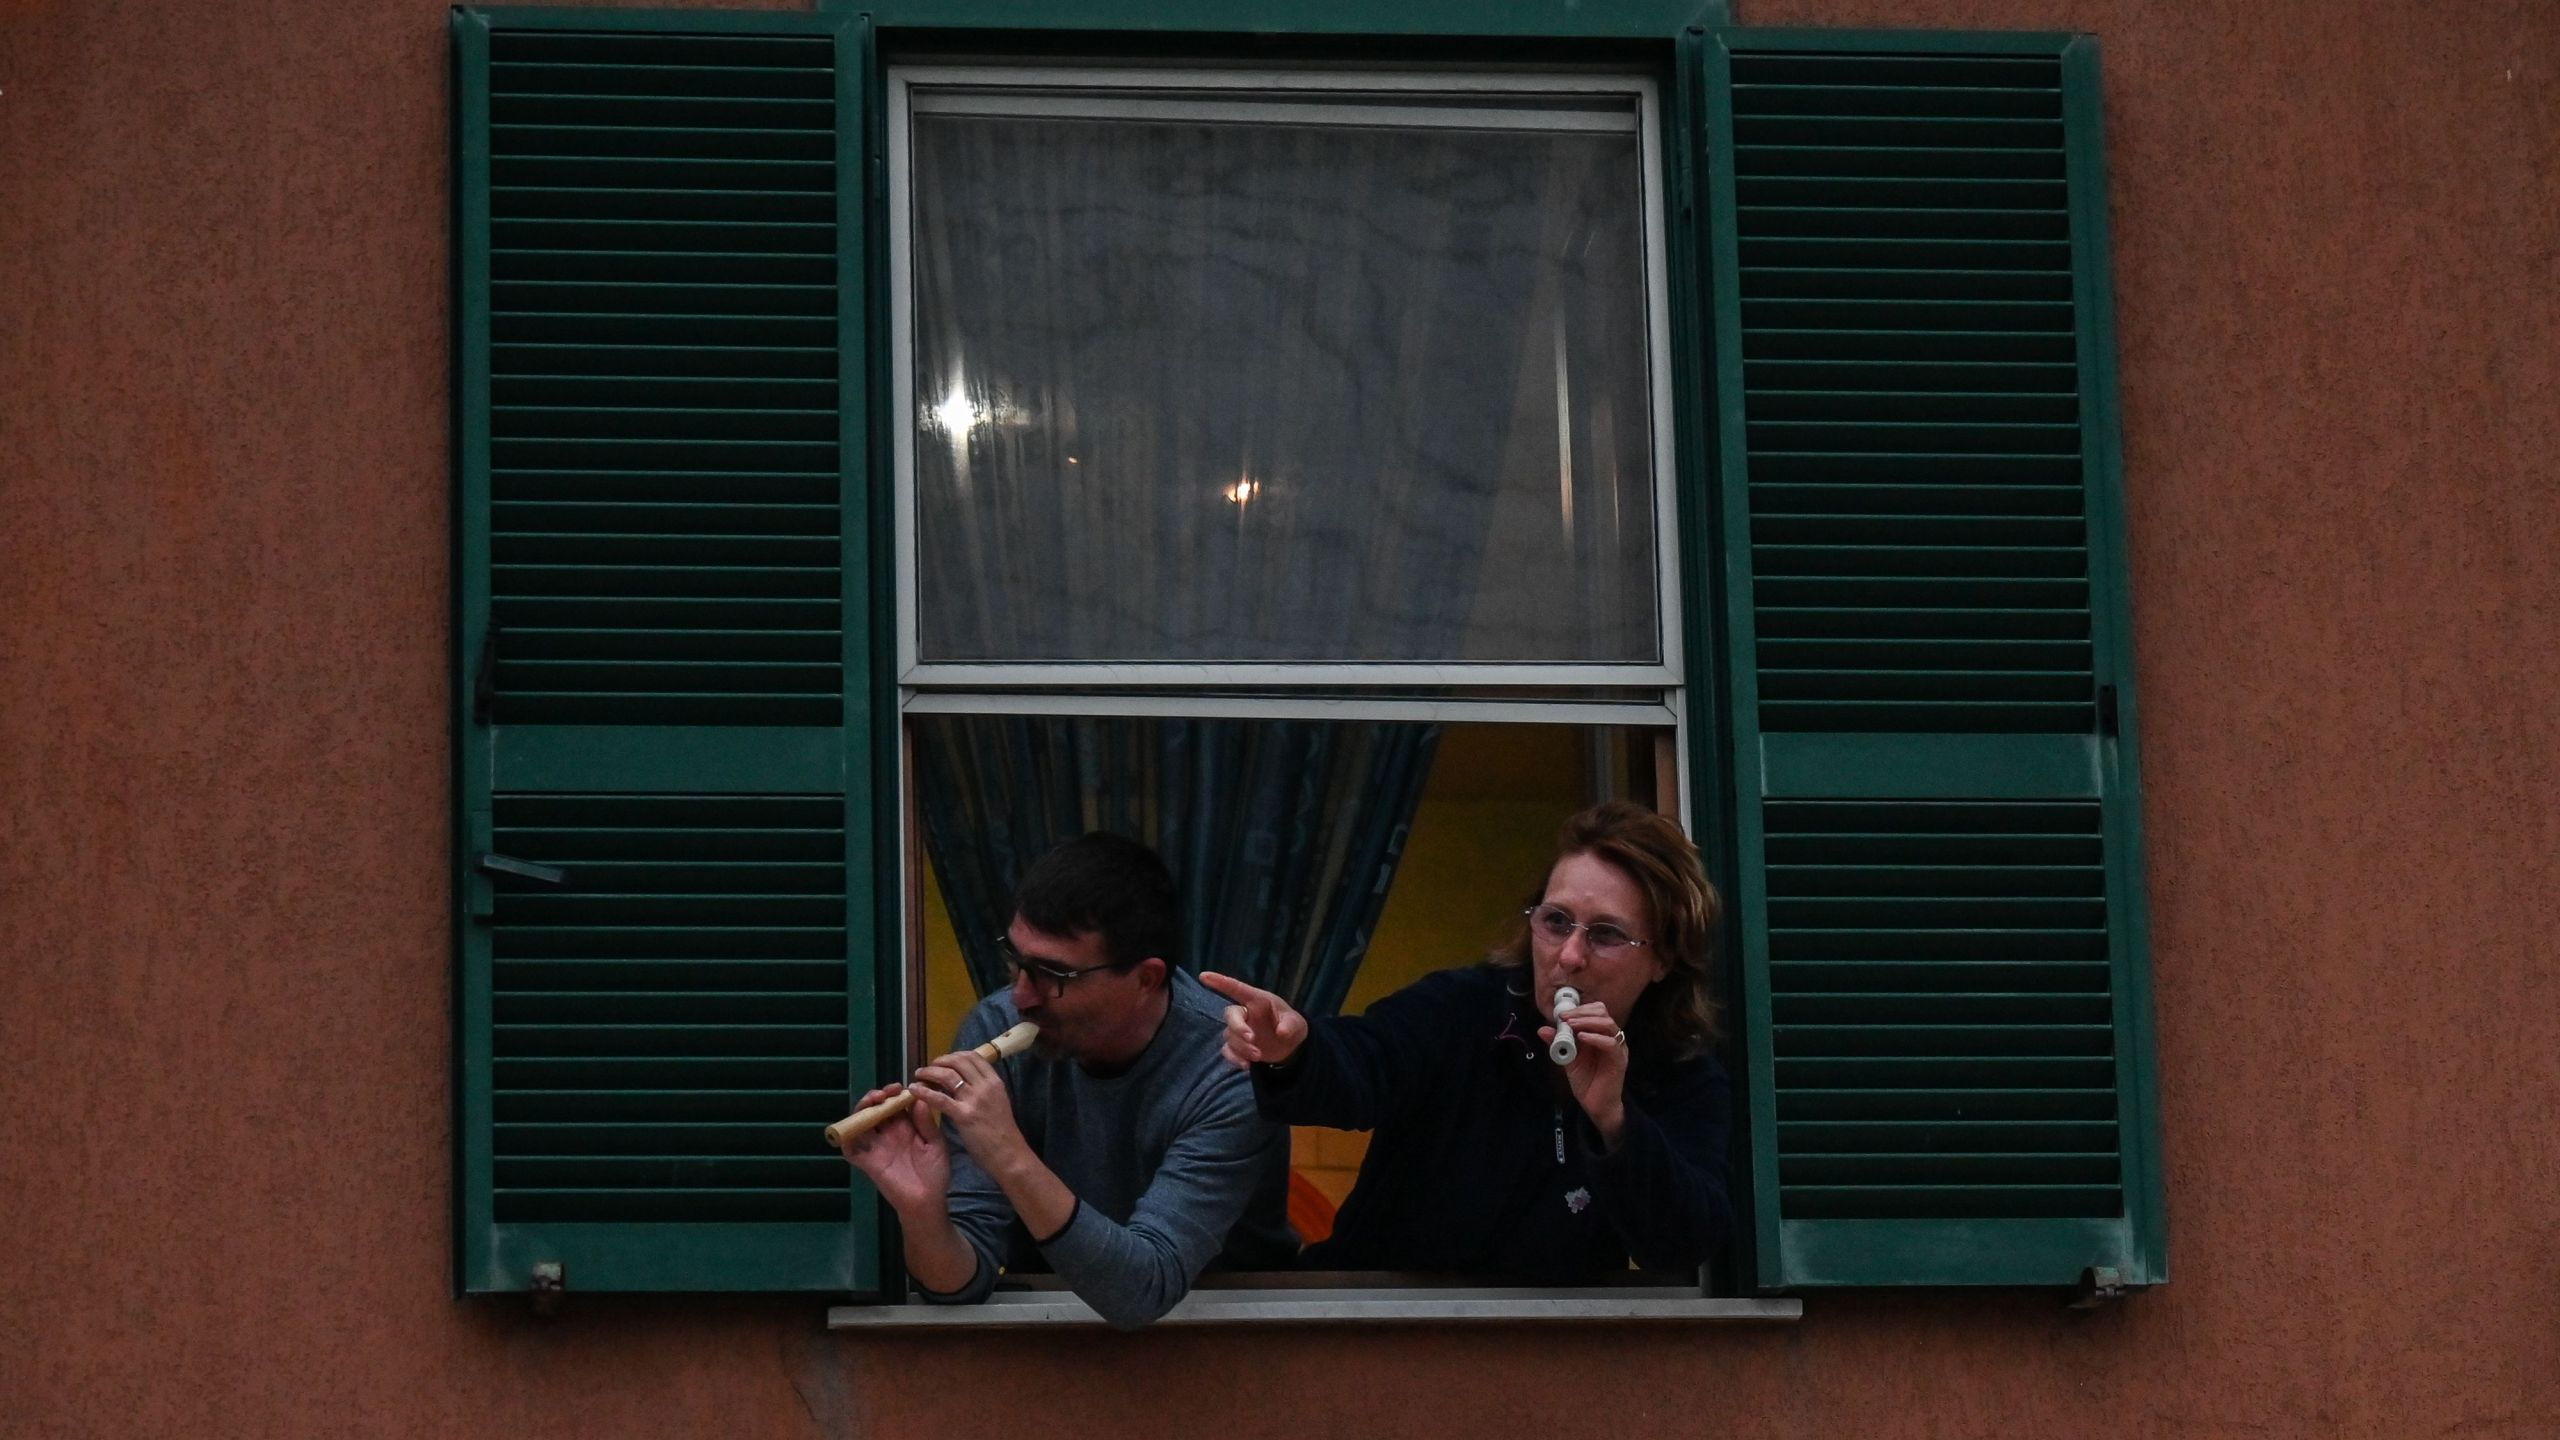 People play the Italian national anthem with from the window of their house in Rome during a music flash mob aimed at livening up the city's silence during the coronavirus lockdown, on March 13, 2020. (Credit: Andreas Solaro / AFP / Getty Images)